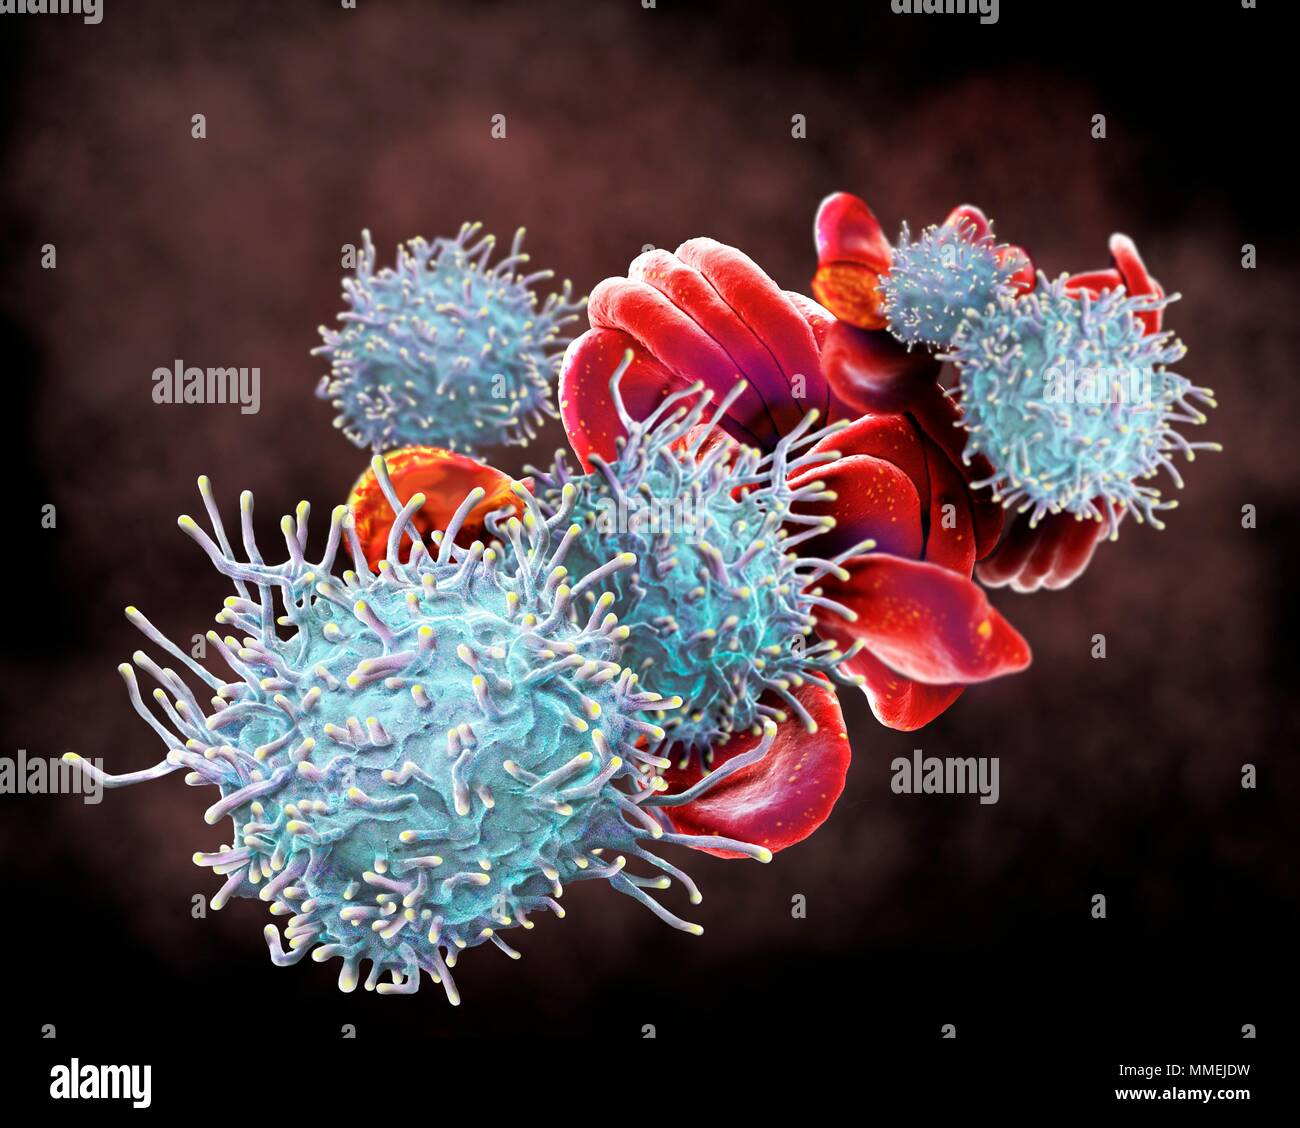 Activated T lymphocytes and red blood cells (RBCs). Coloured scanning electron micrograph (SEM) of activated T lymphocytes and RBCs from a human blood Stock Photo